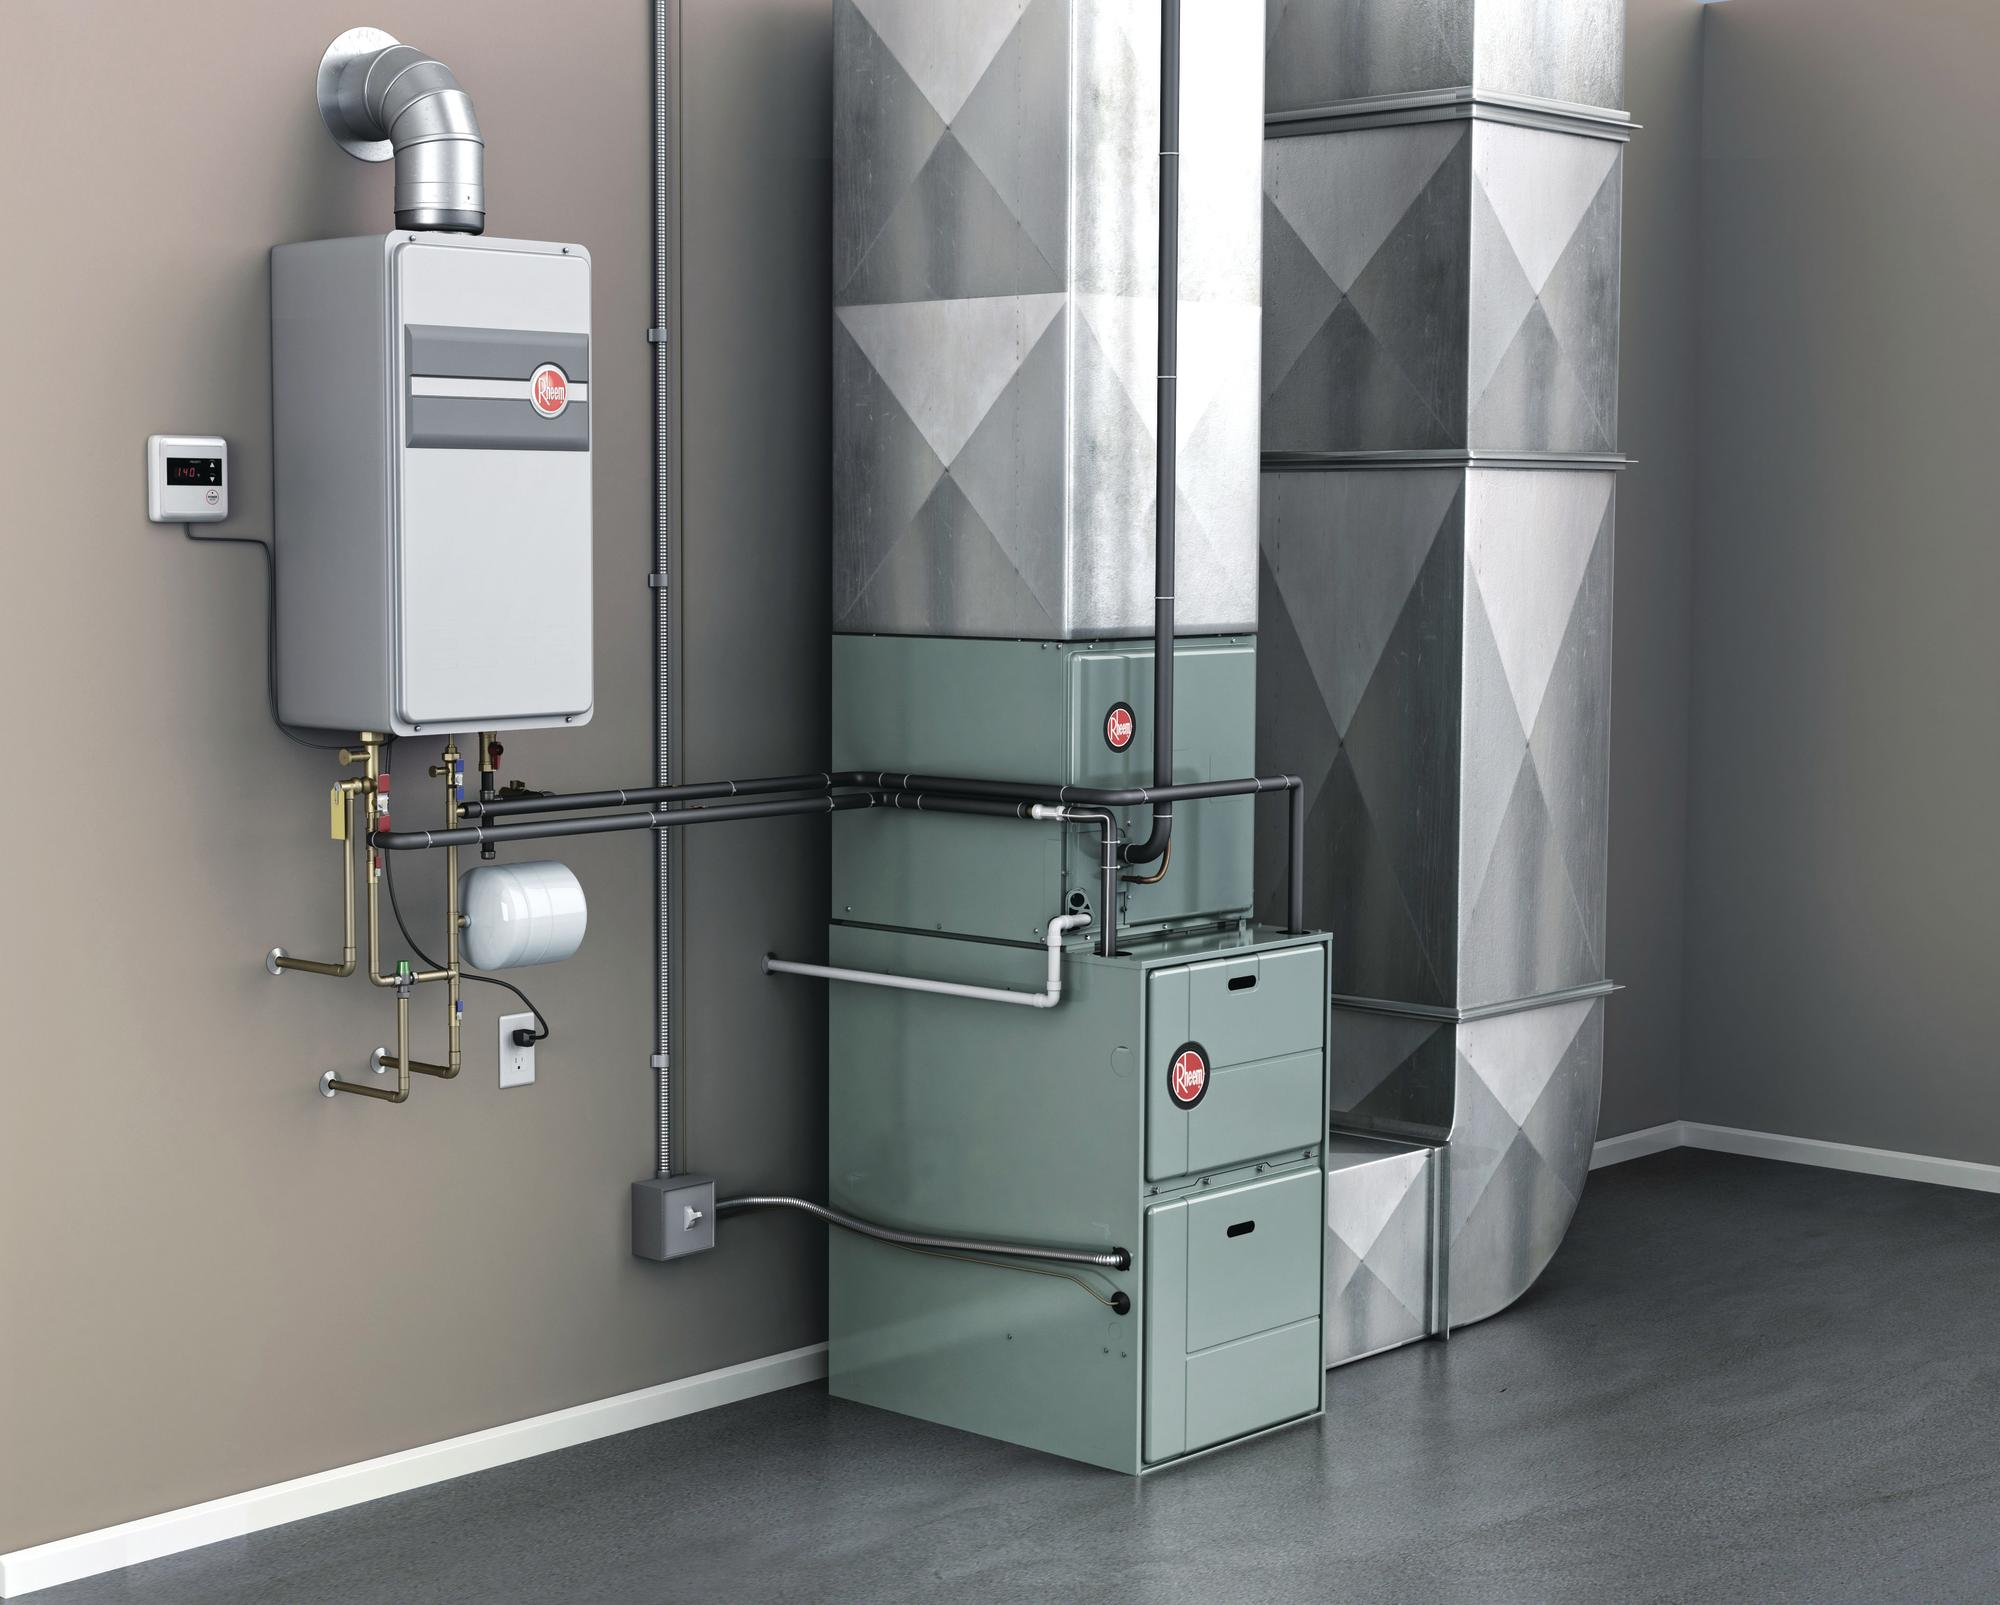 Rheem Integrated HVAC and Water Heating System